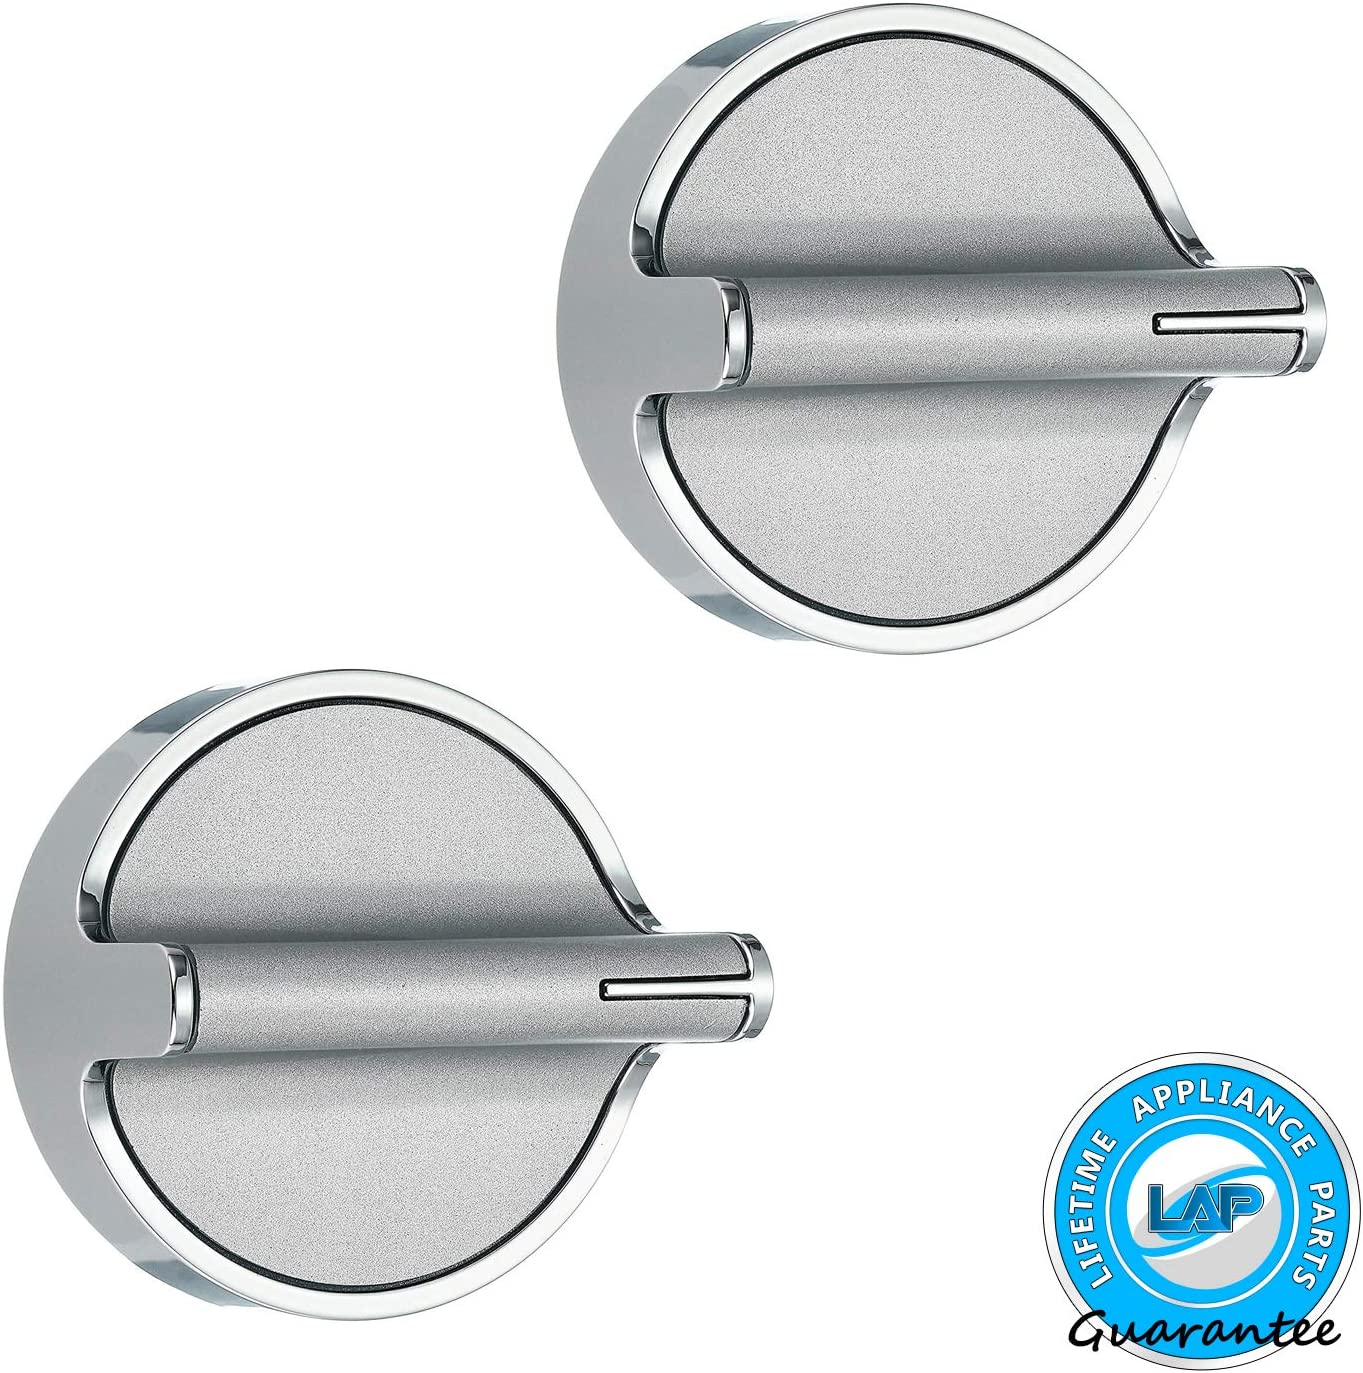 Lifetime Appliance 2 x W10818230 Knob Compatible with Whirlpool Stove/Range